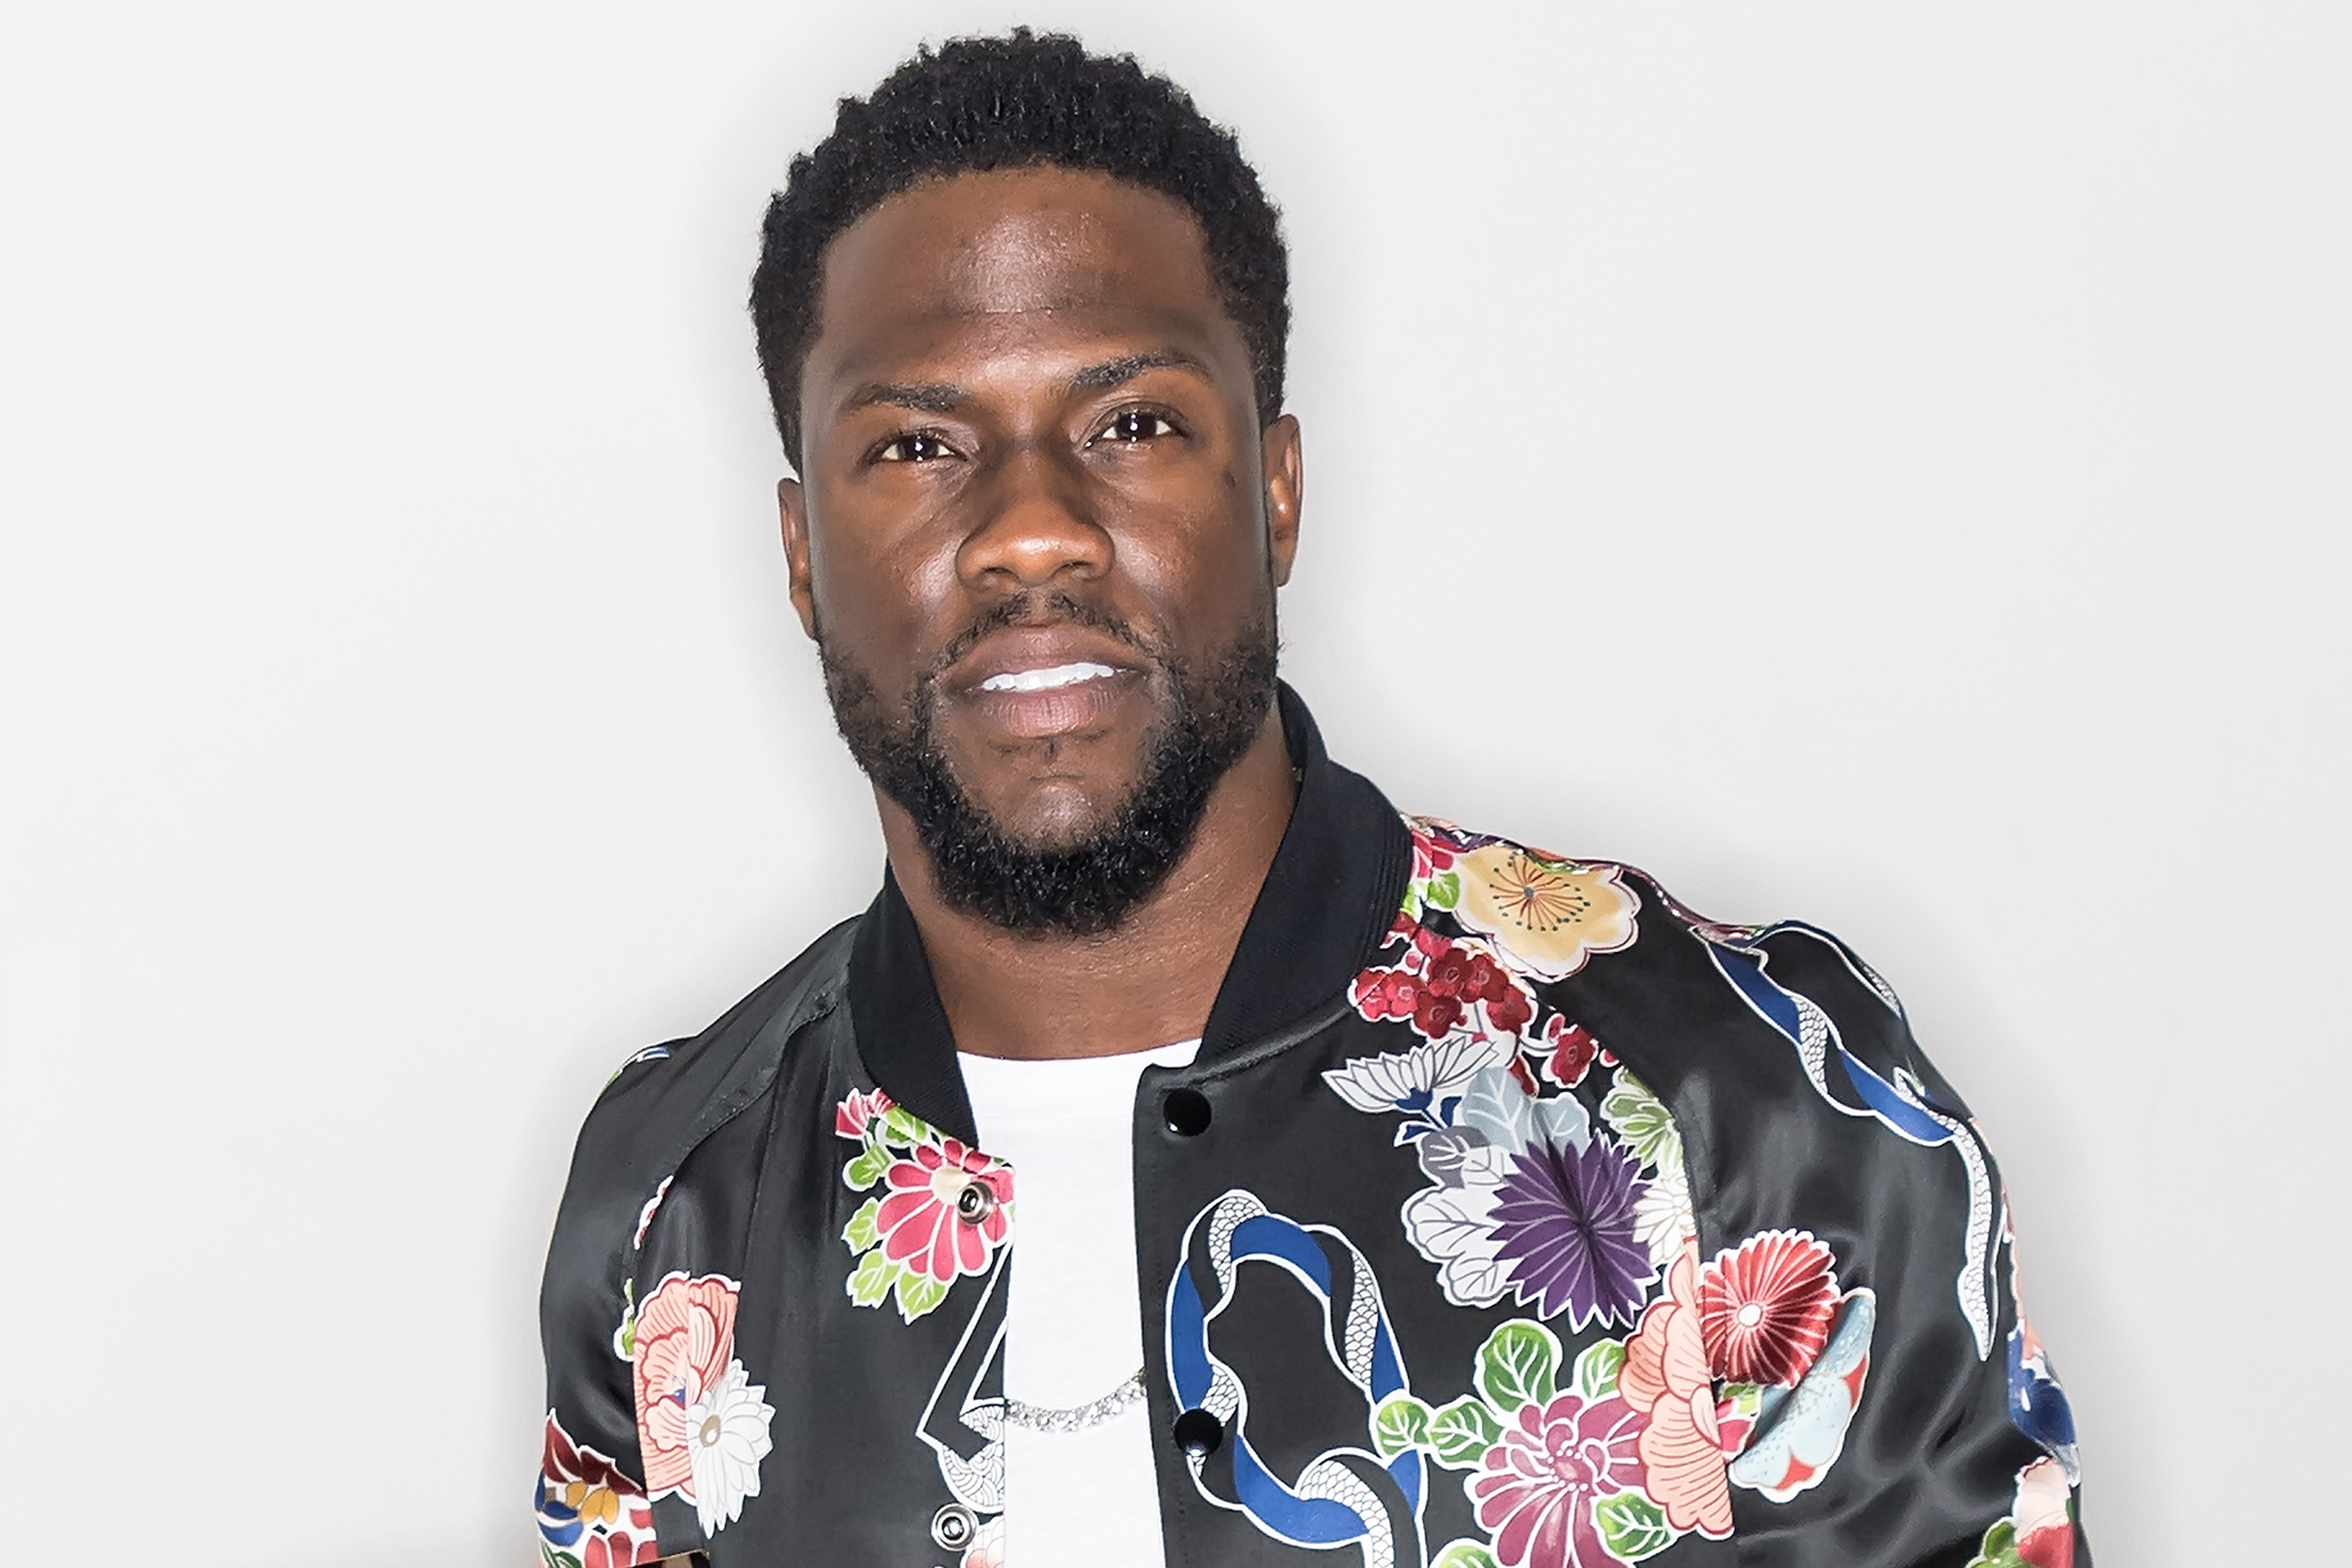 Kevin Hart Says He Will Not Apologize Even If That Gets Him Fired From the Academy Awards